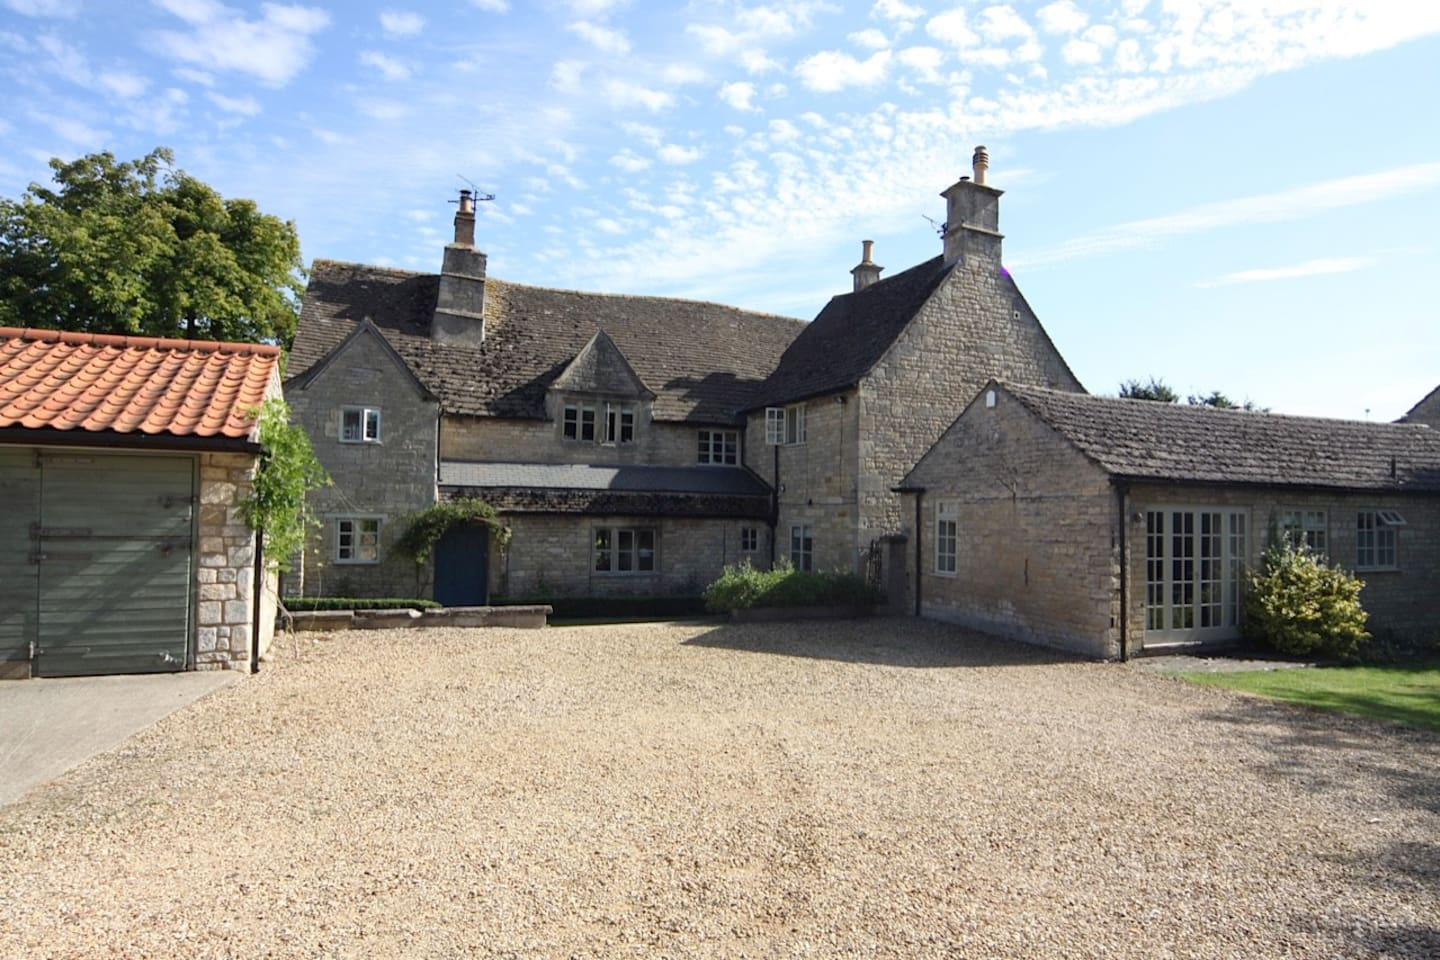 Rectory Farm Annexe is situated in the courtyard of Rectory Farm, a listed building dating from the 15th Century in the village of Castle Bytham.